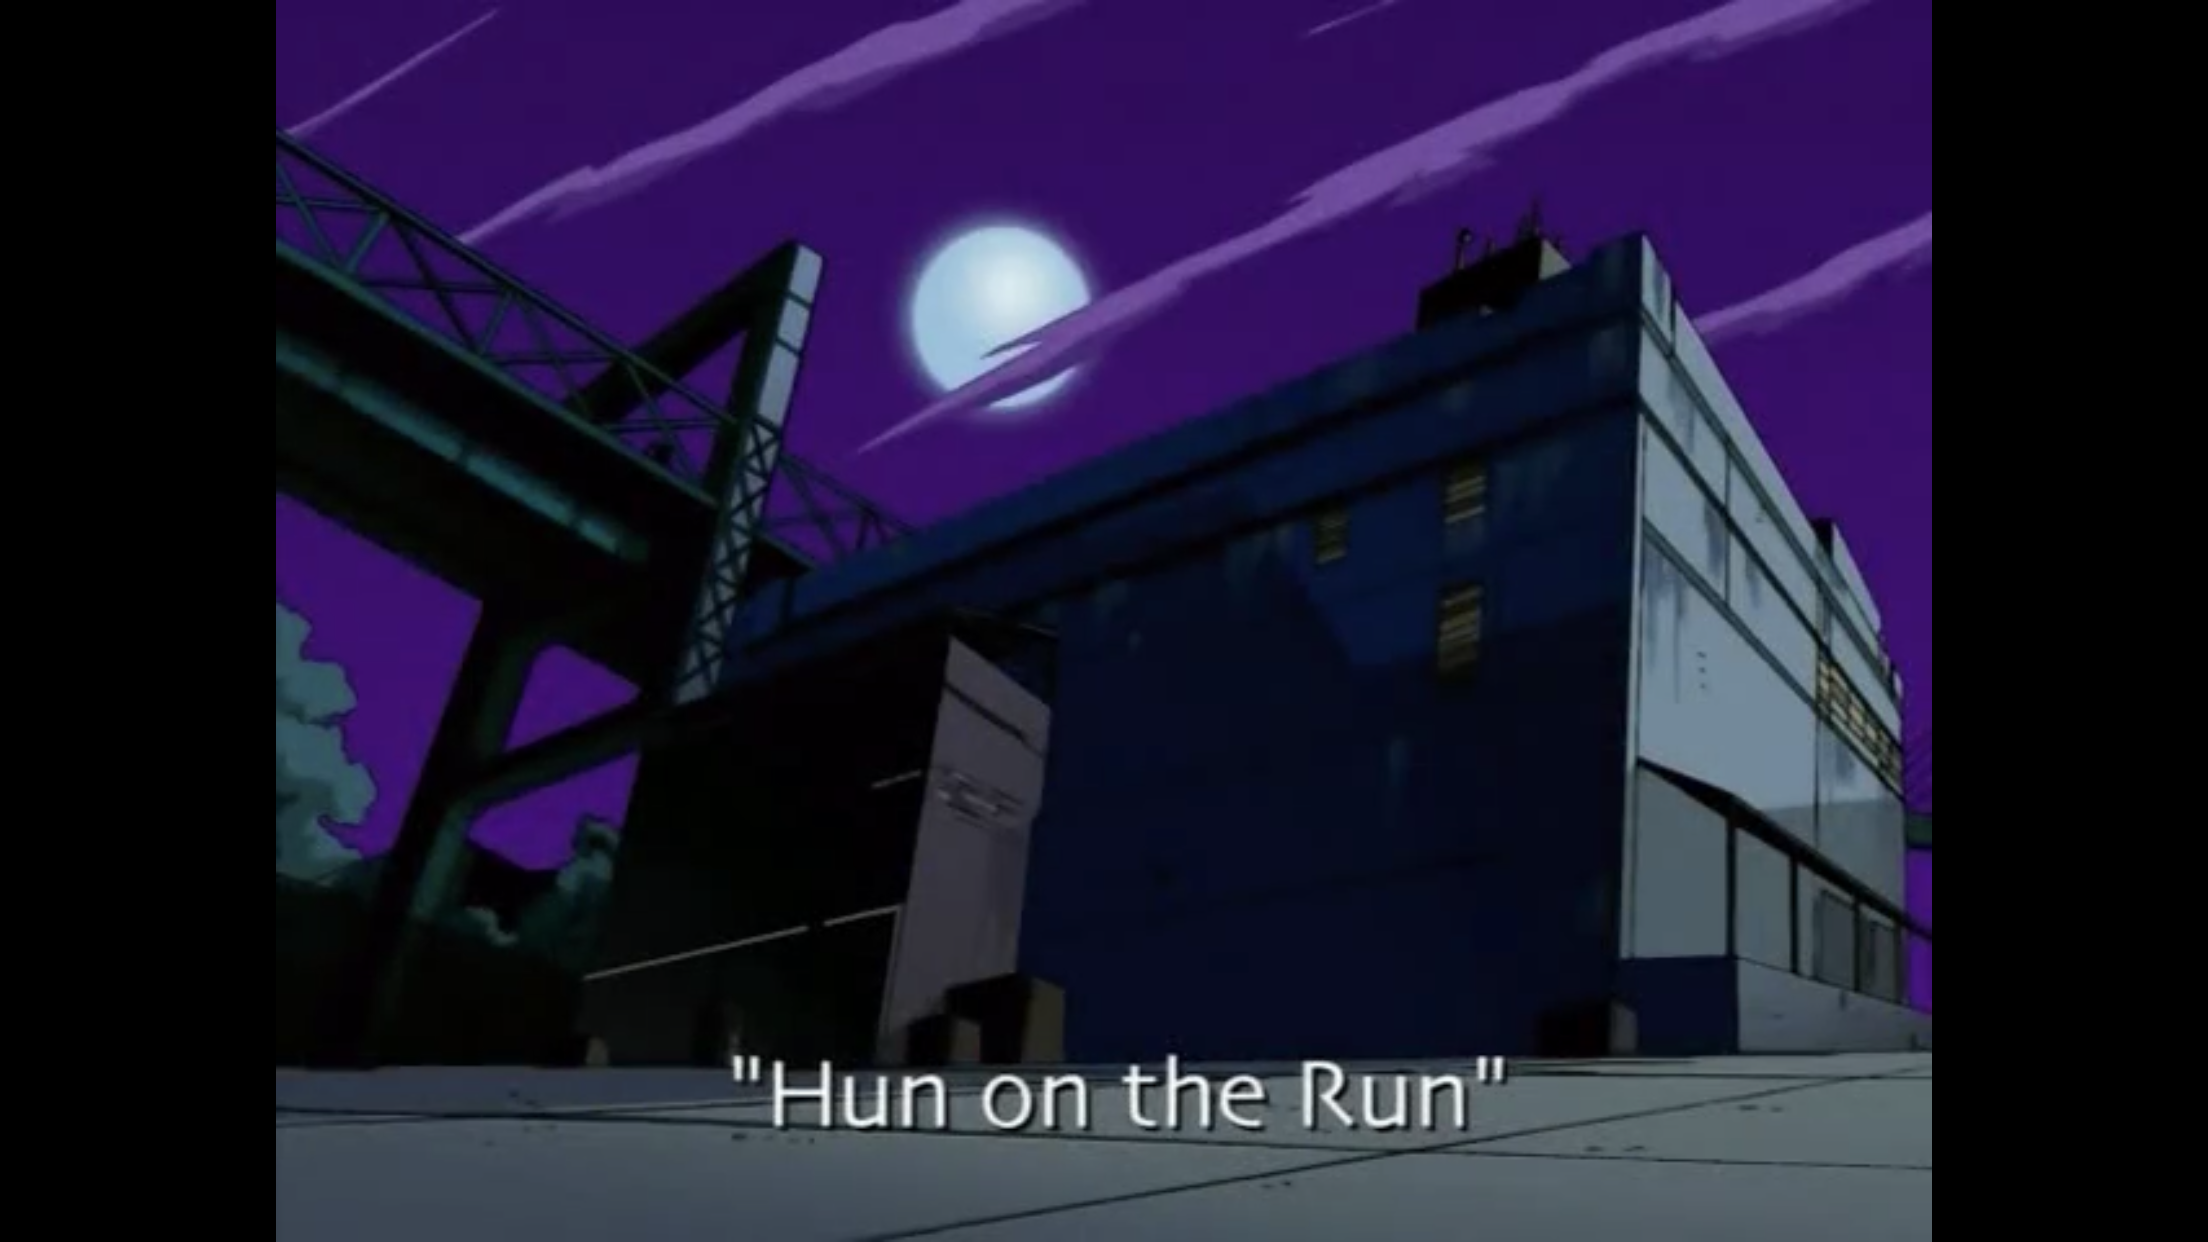 Hun on the Run